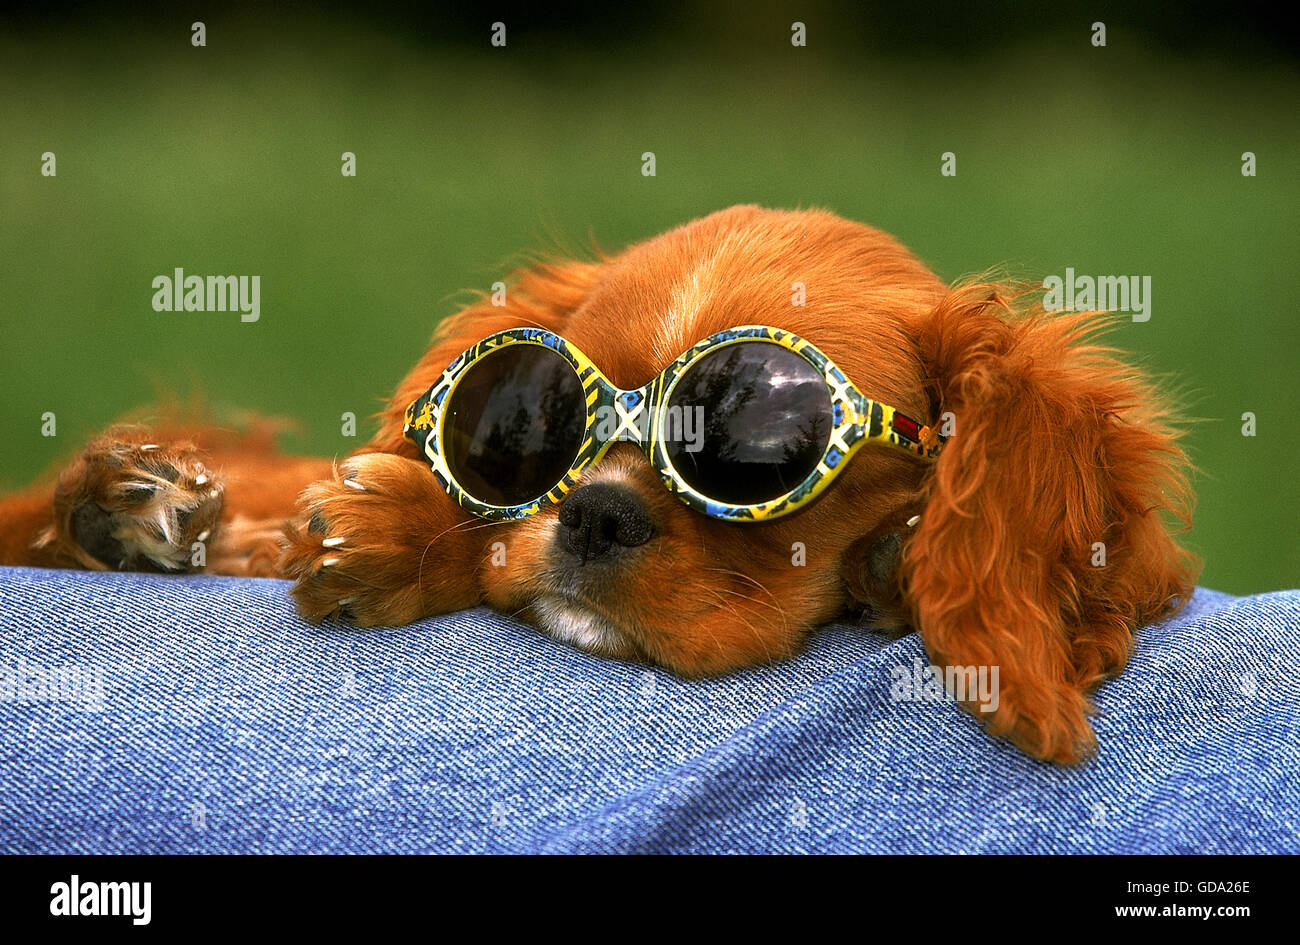 Cavalier King Charles Spaniel Pup With Sunglasses Ruby Stock Photo Alamy